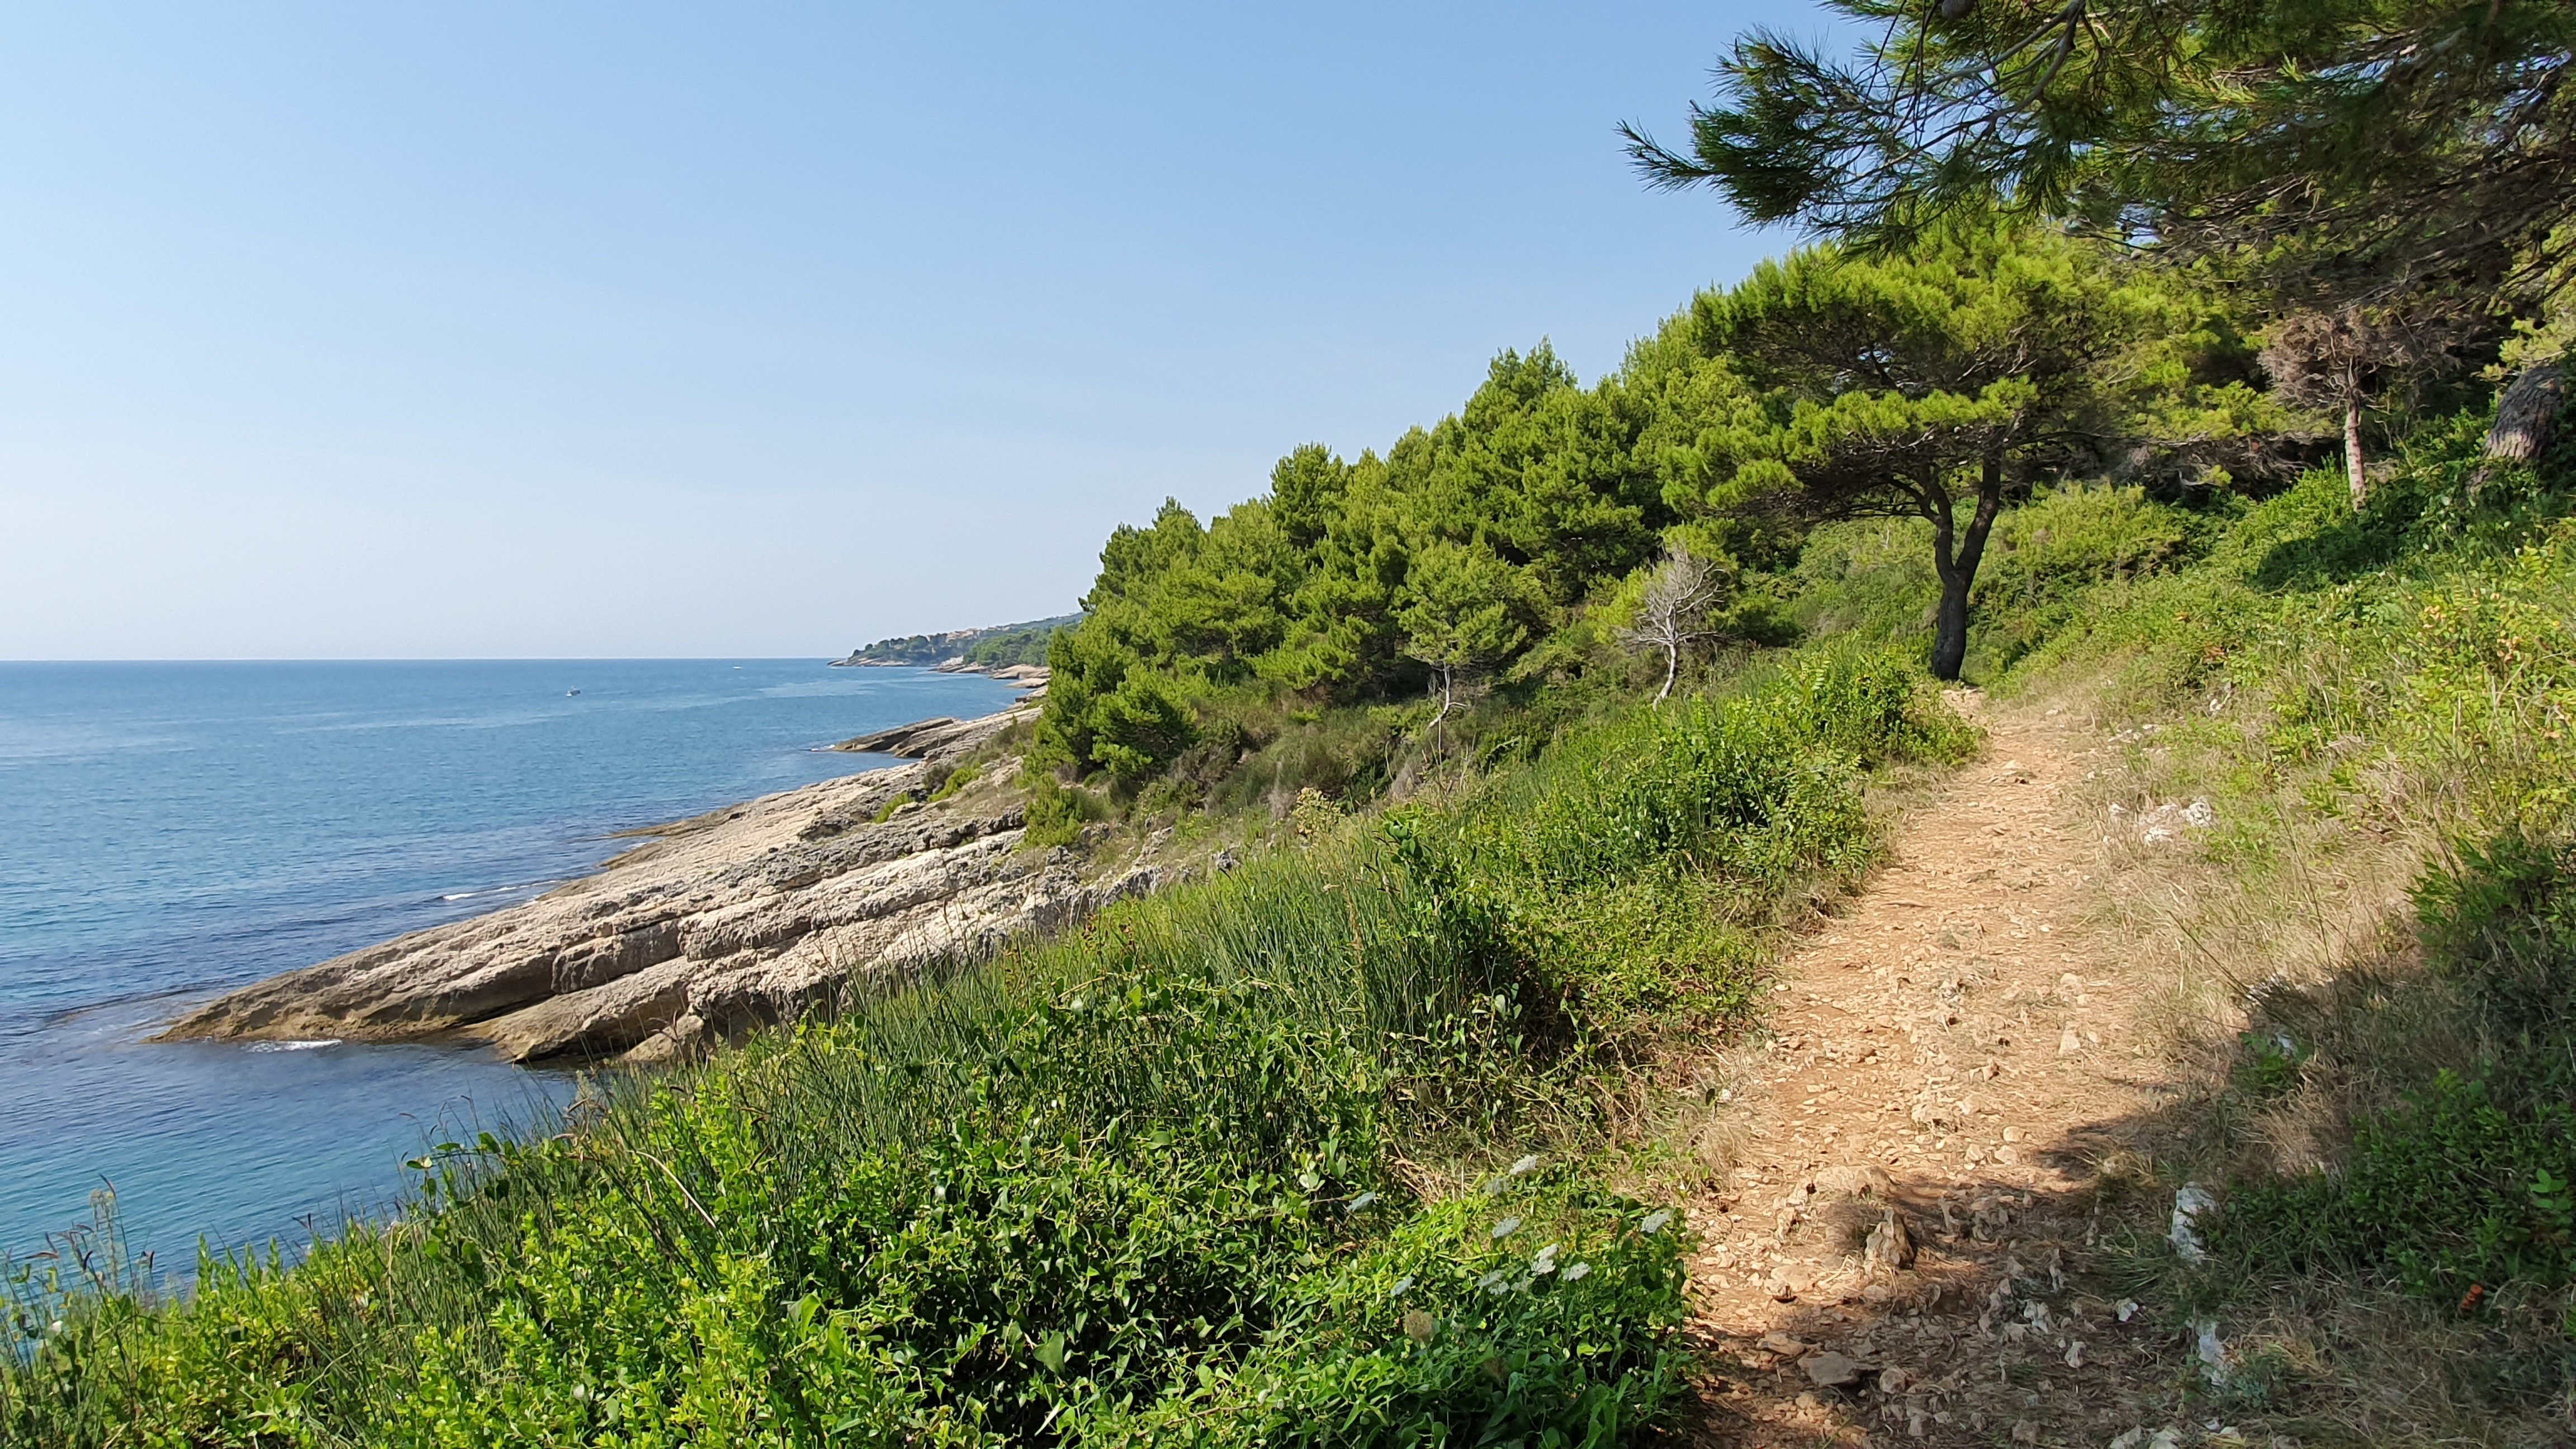 a coastal path through trees overlooking the rocky coastline and sea